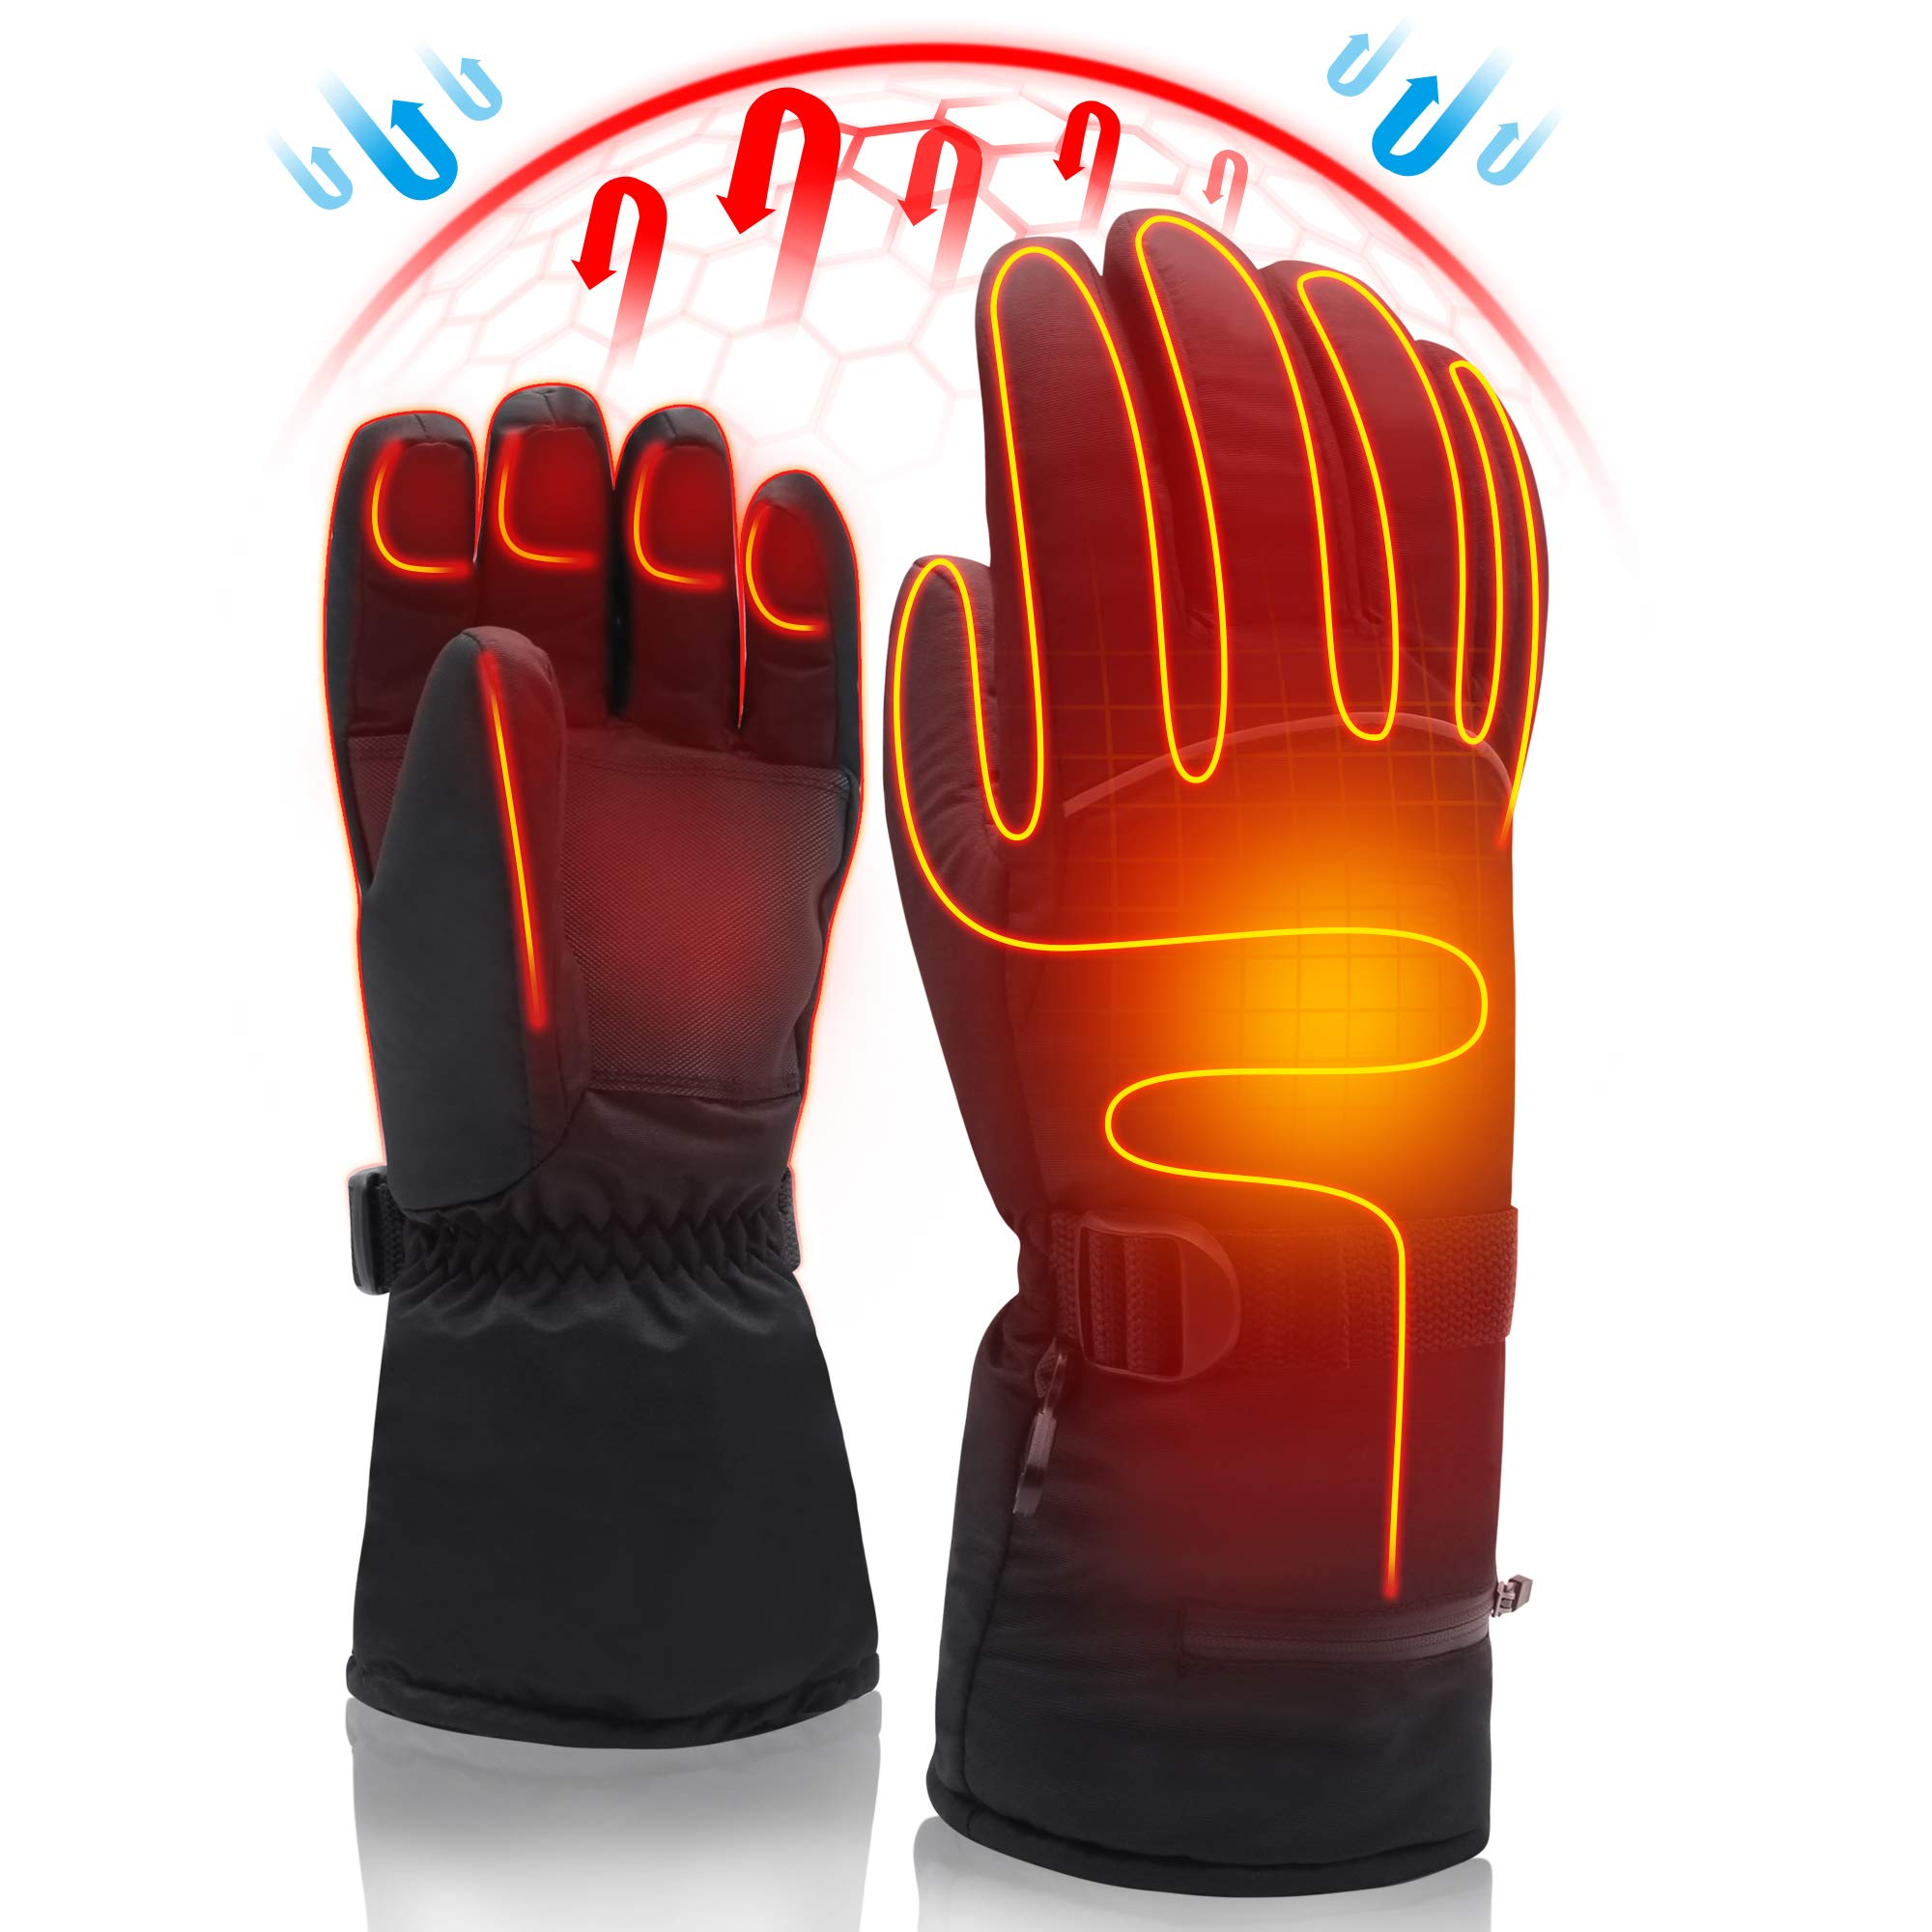 Electric Rechargeable Battery Heated Gloves,Cold Weather Thermal Heat Gloves Mittens,Sport Outdoor Warm Winter Heated Gloves,Cycle Motorcycle Drive Camp Hike Ski Heated Handwarmer (7.4V Gloves-XL) by SVPRO